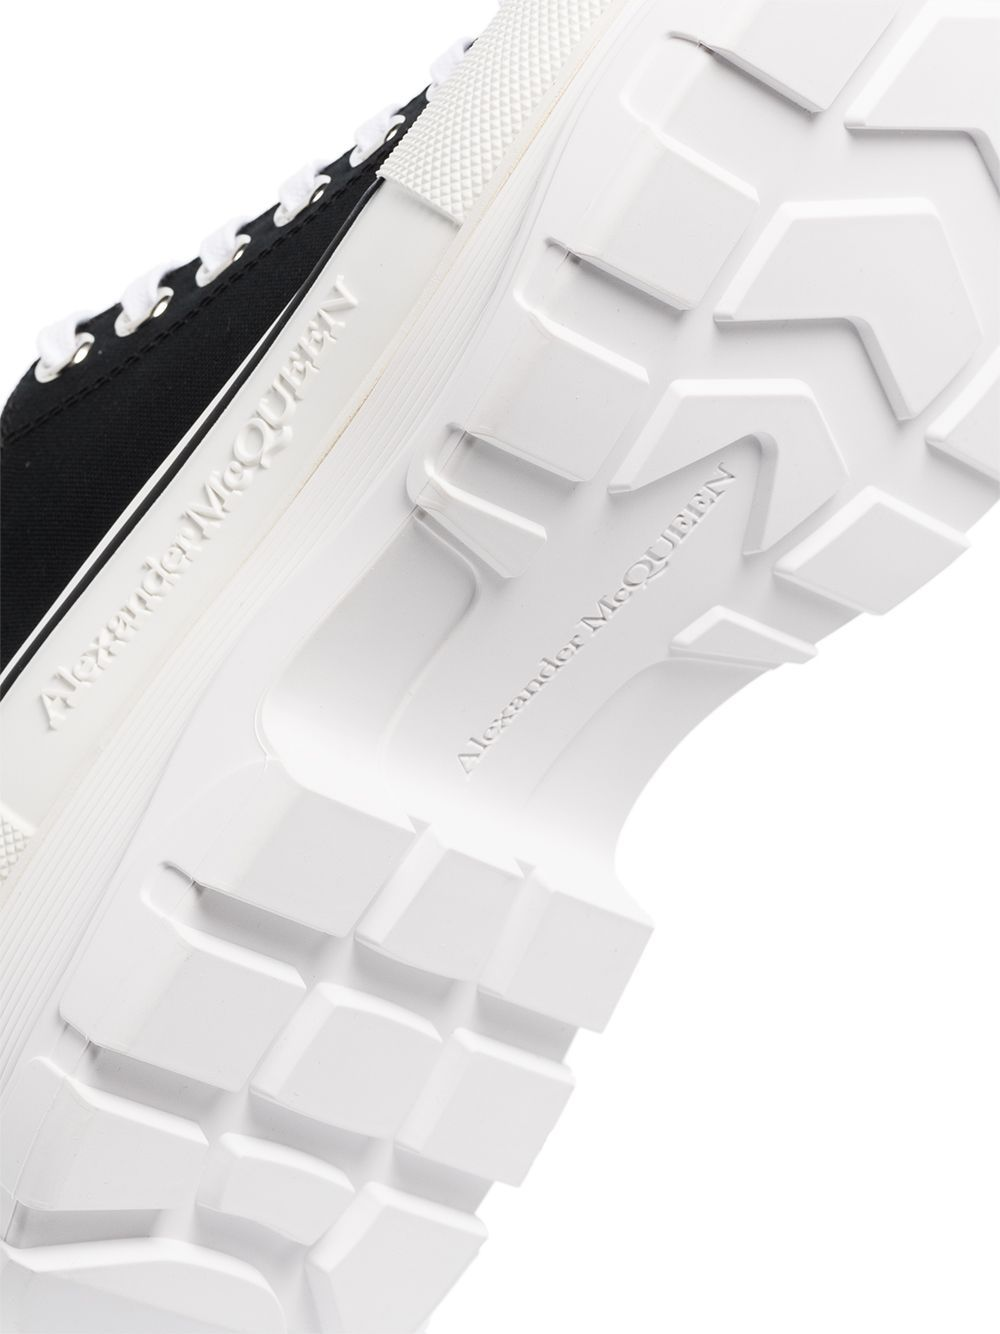 ALEXANDER MCQUEEN Tread Slick Lace-up Sneakers Black/White - Maison De Fashion